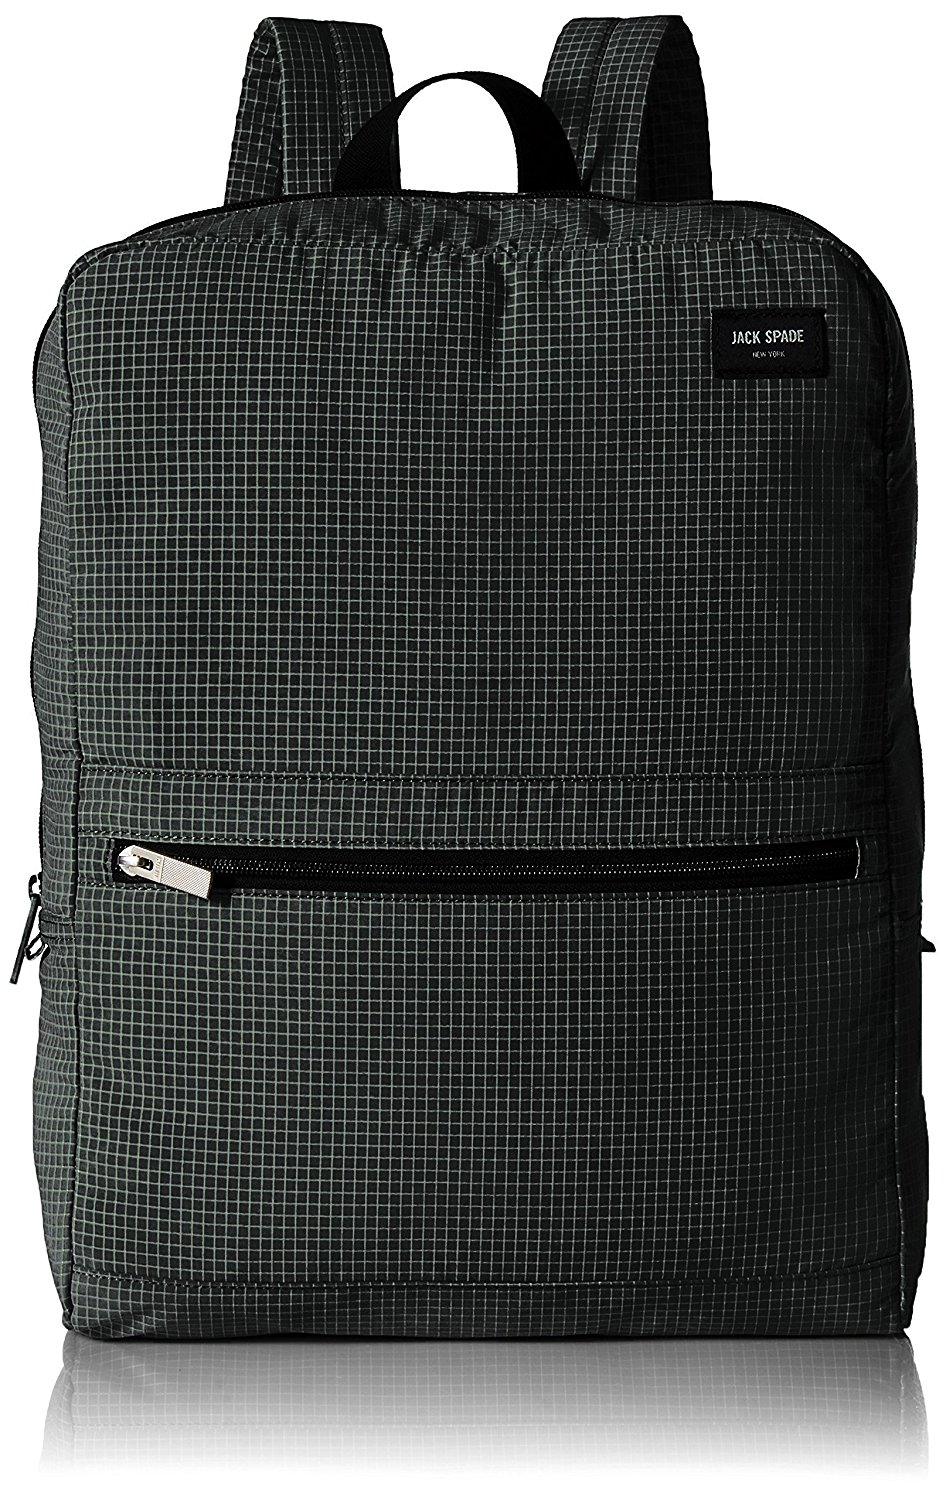 Jack Spade Men's Packable Graph Check Backpack